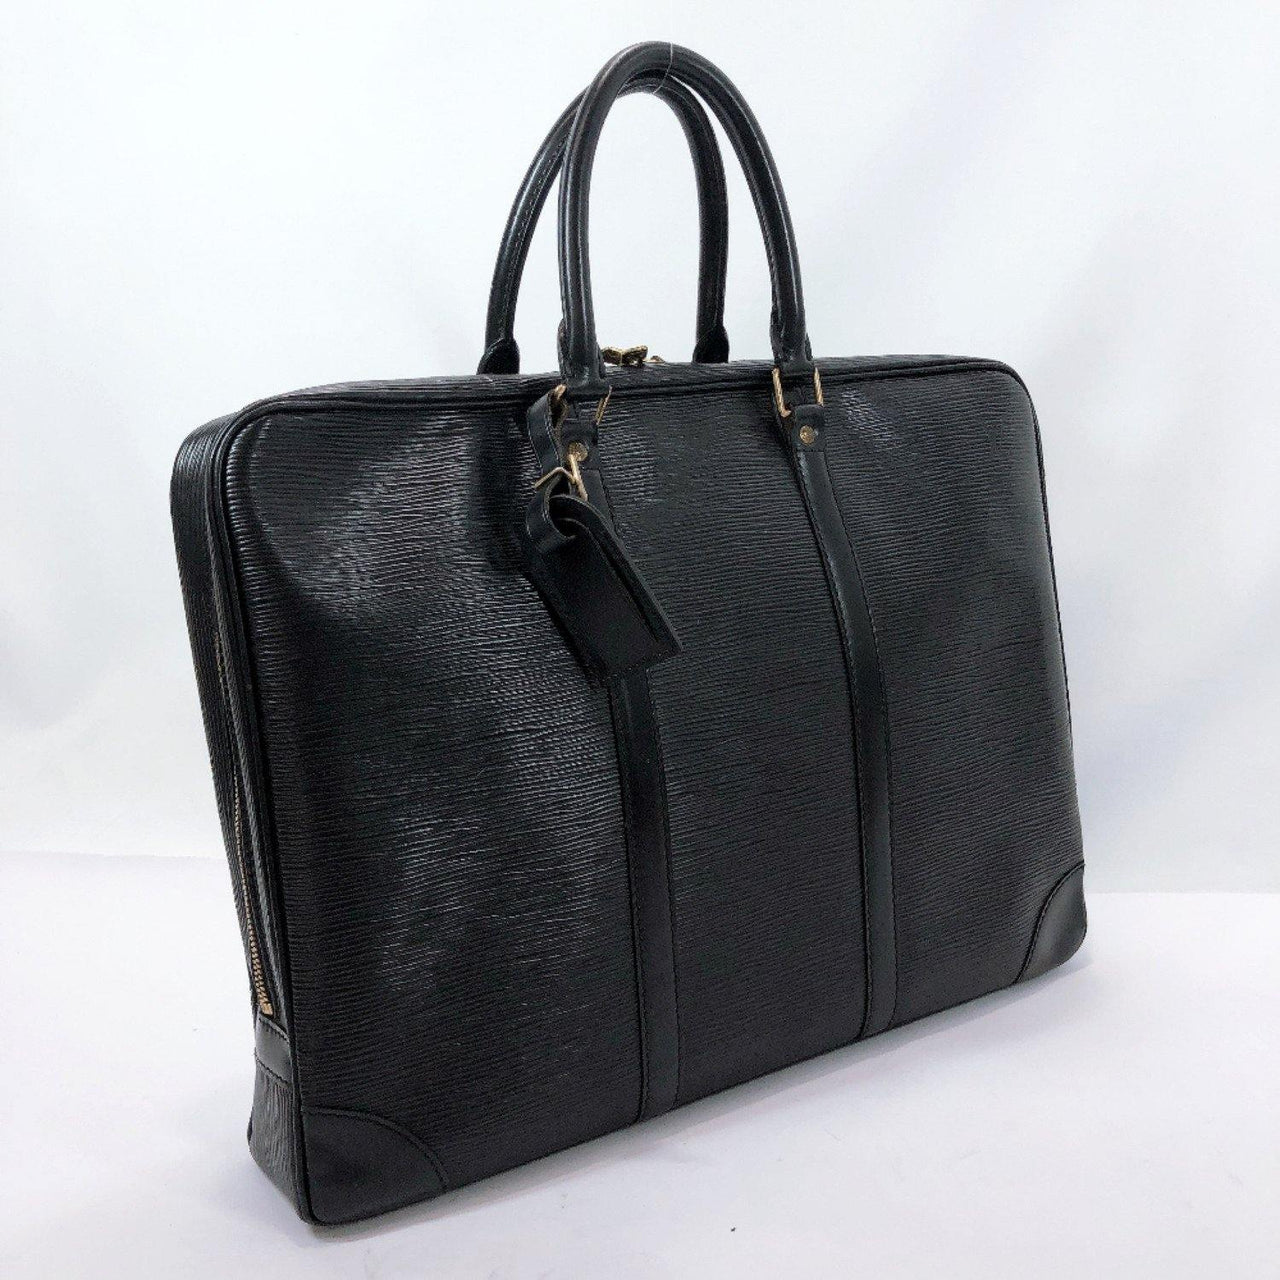 LOUIS VUITTON Business bag M59162 Porte Documan Voyagej Epi Leather black mens Used - JP-BRANDS.com